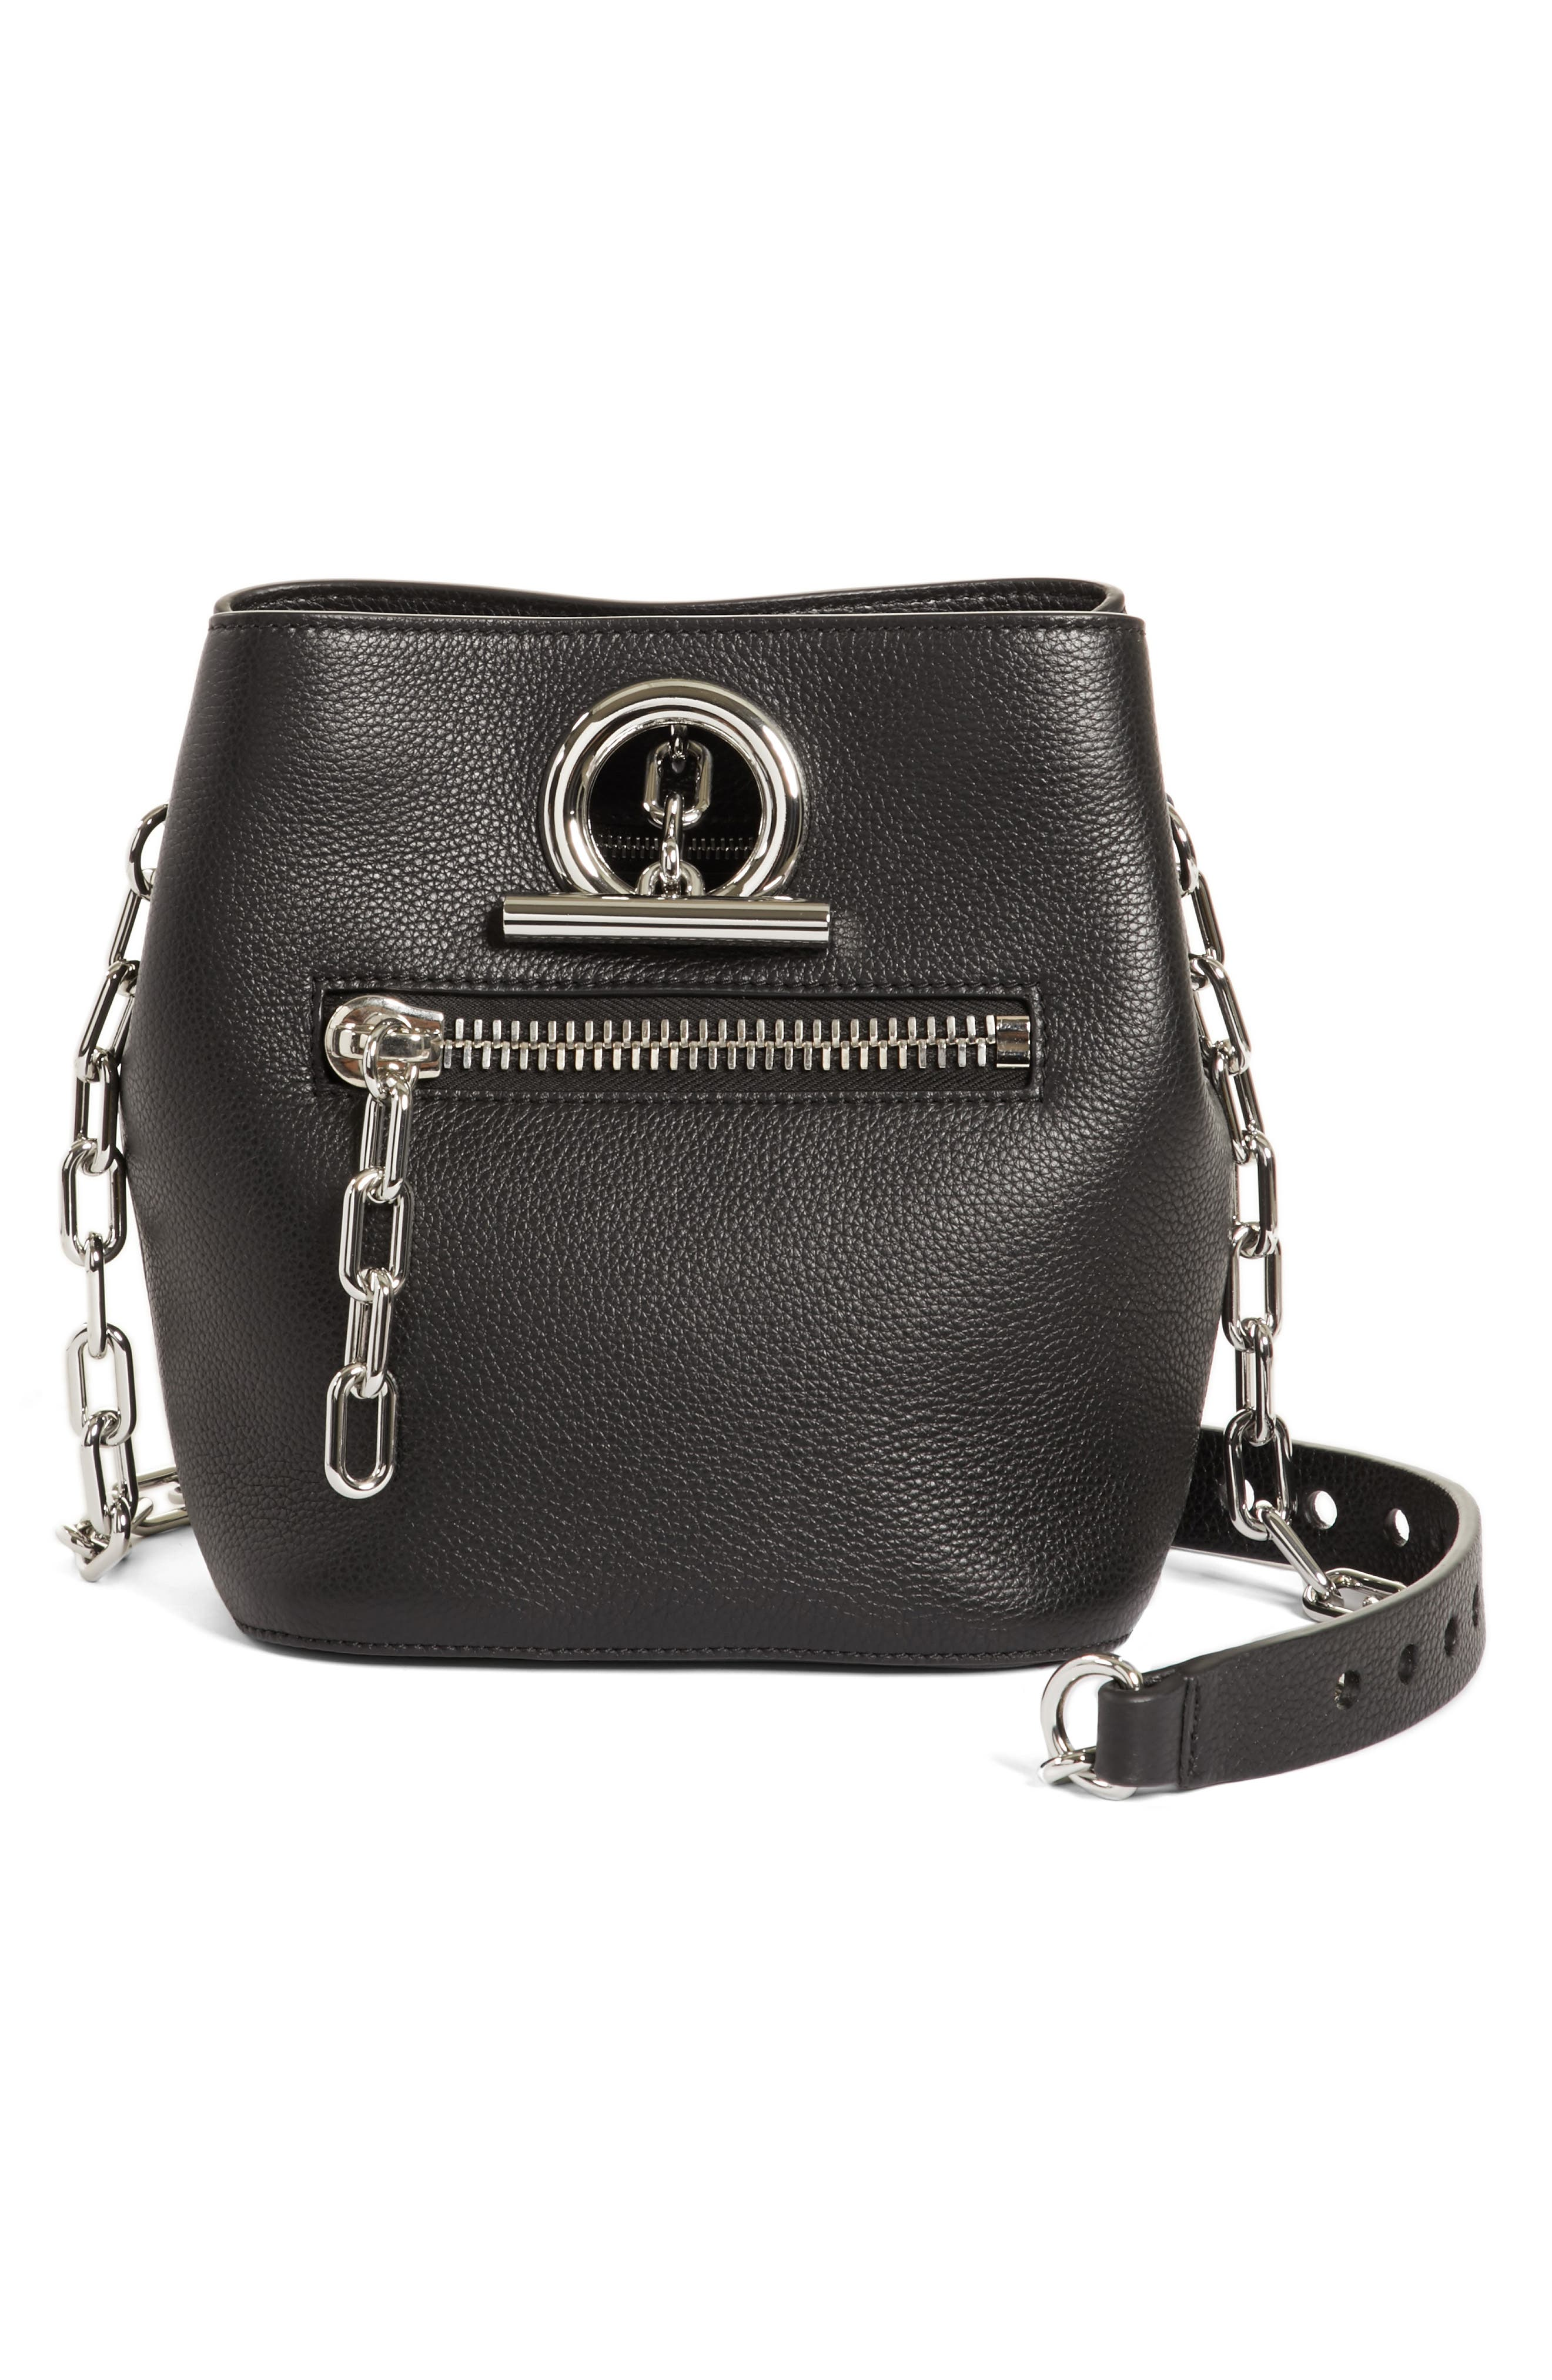 Riot Leather Crossbody Bag,                         Main,                         color, Black